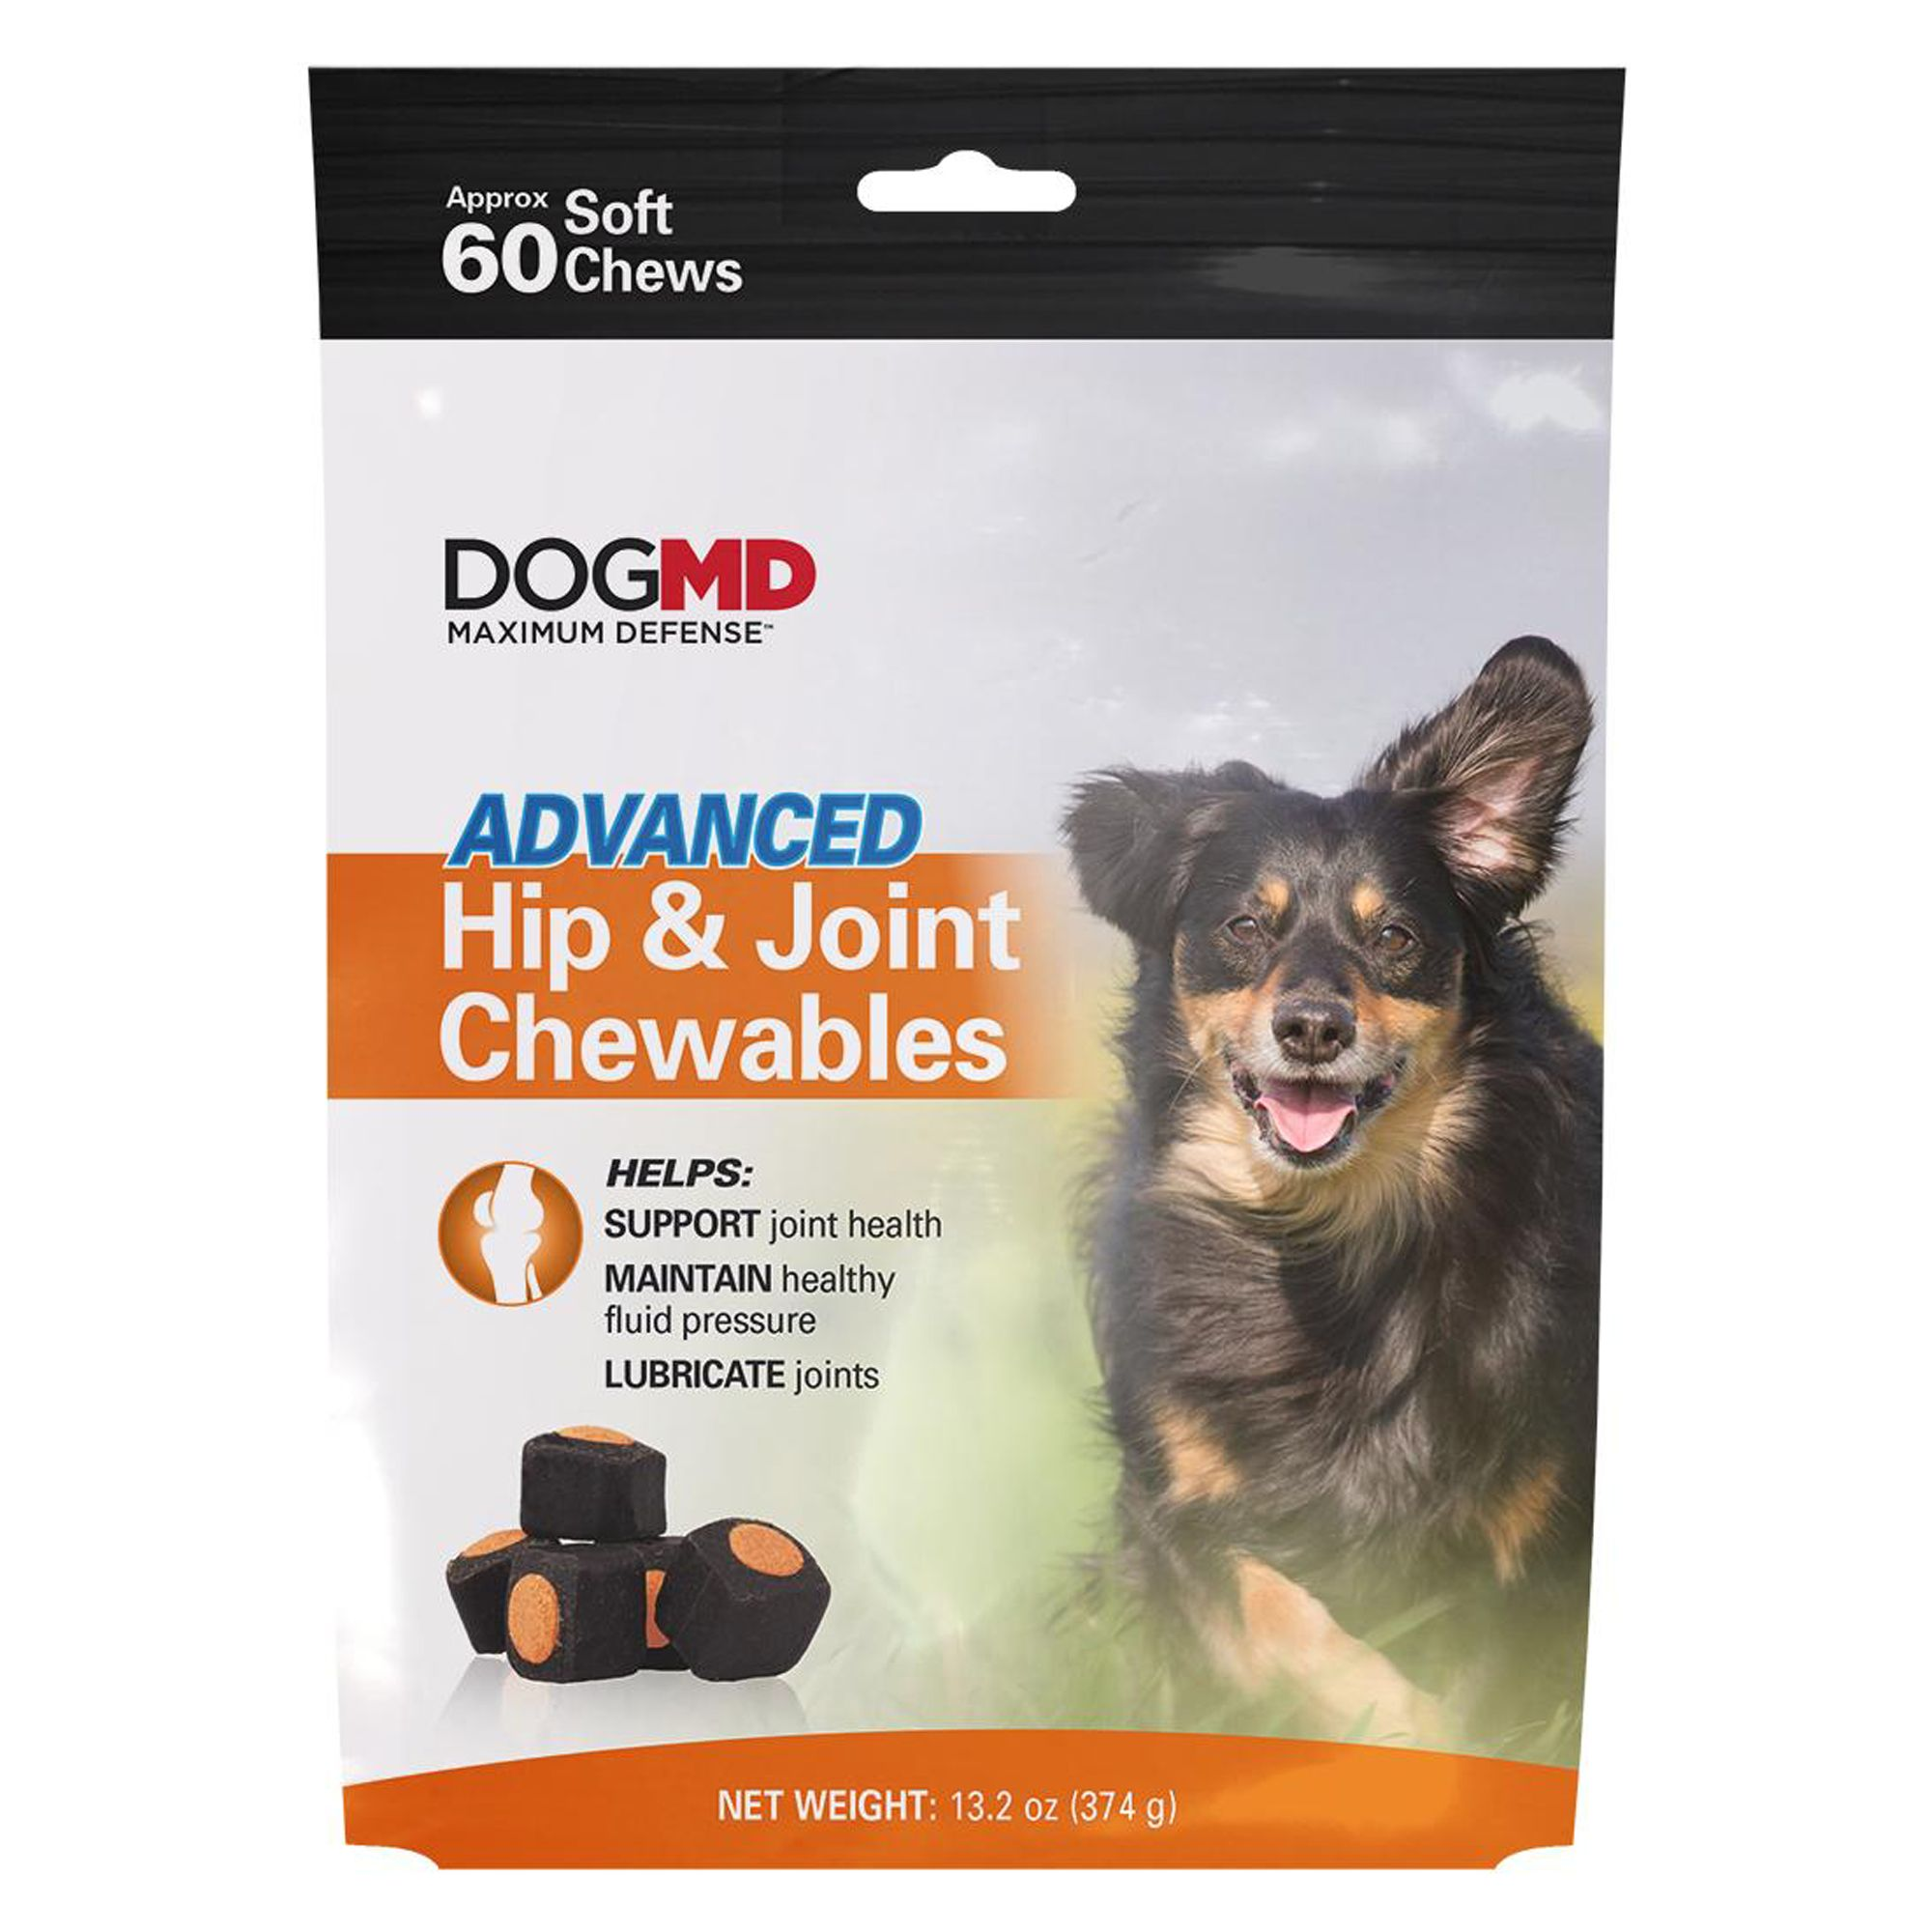 Dog Md Advanced Hip And Joint Dog Chewables Size 60 Count